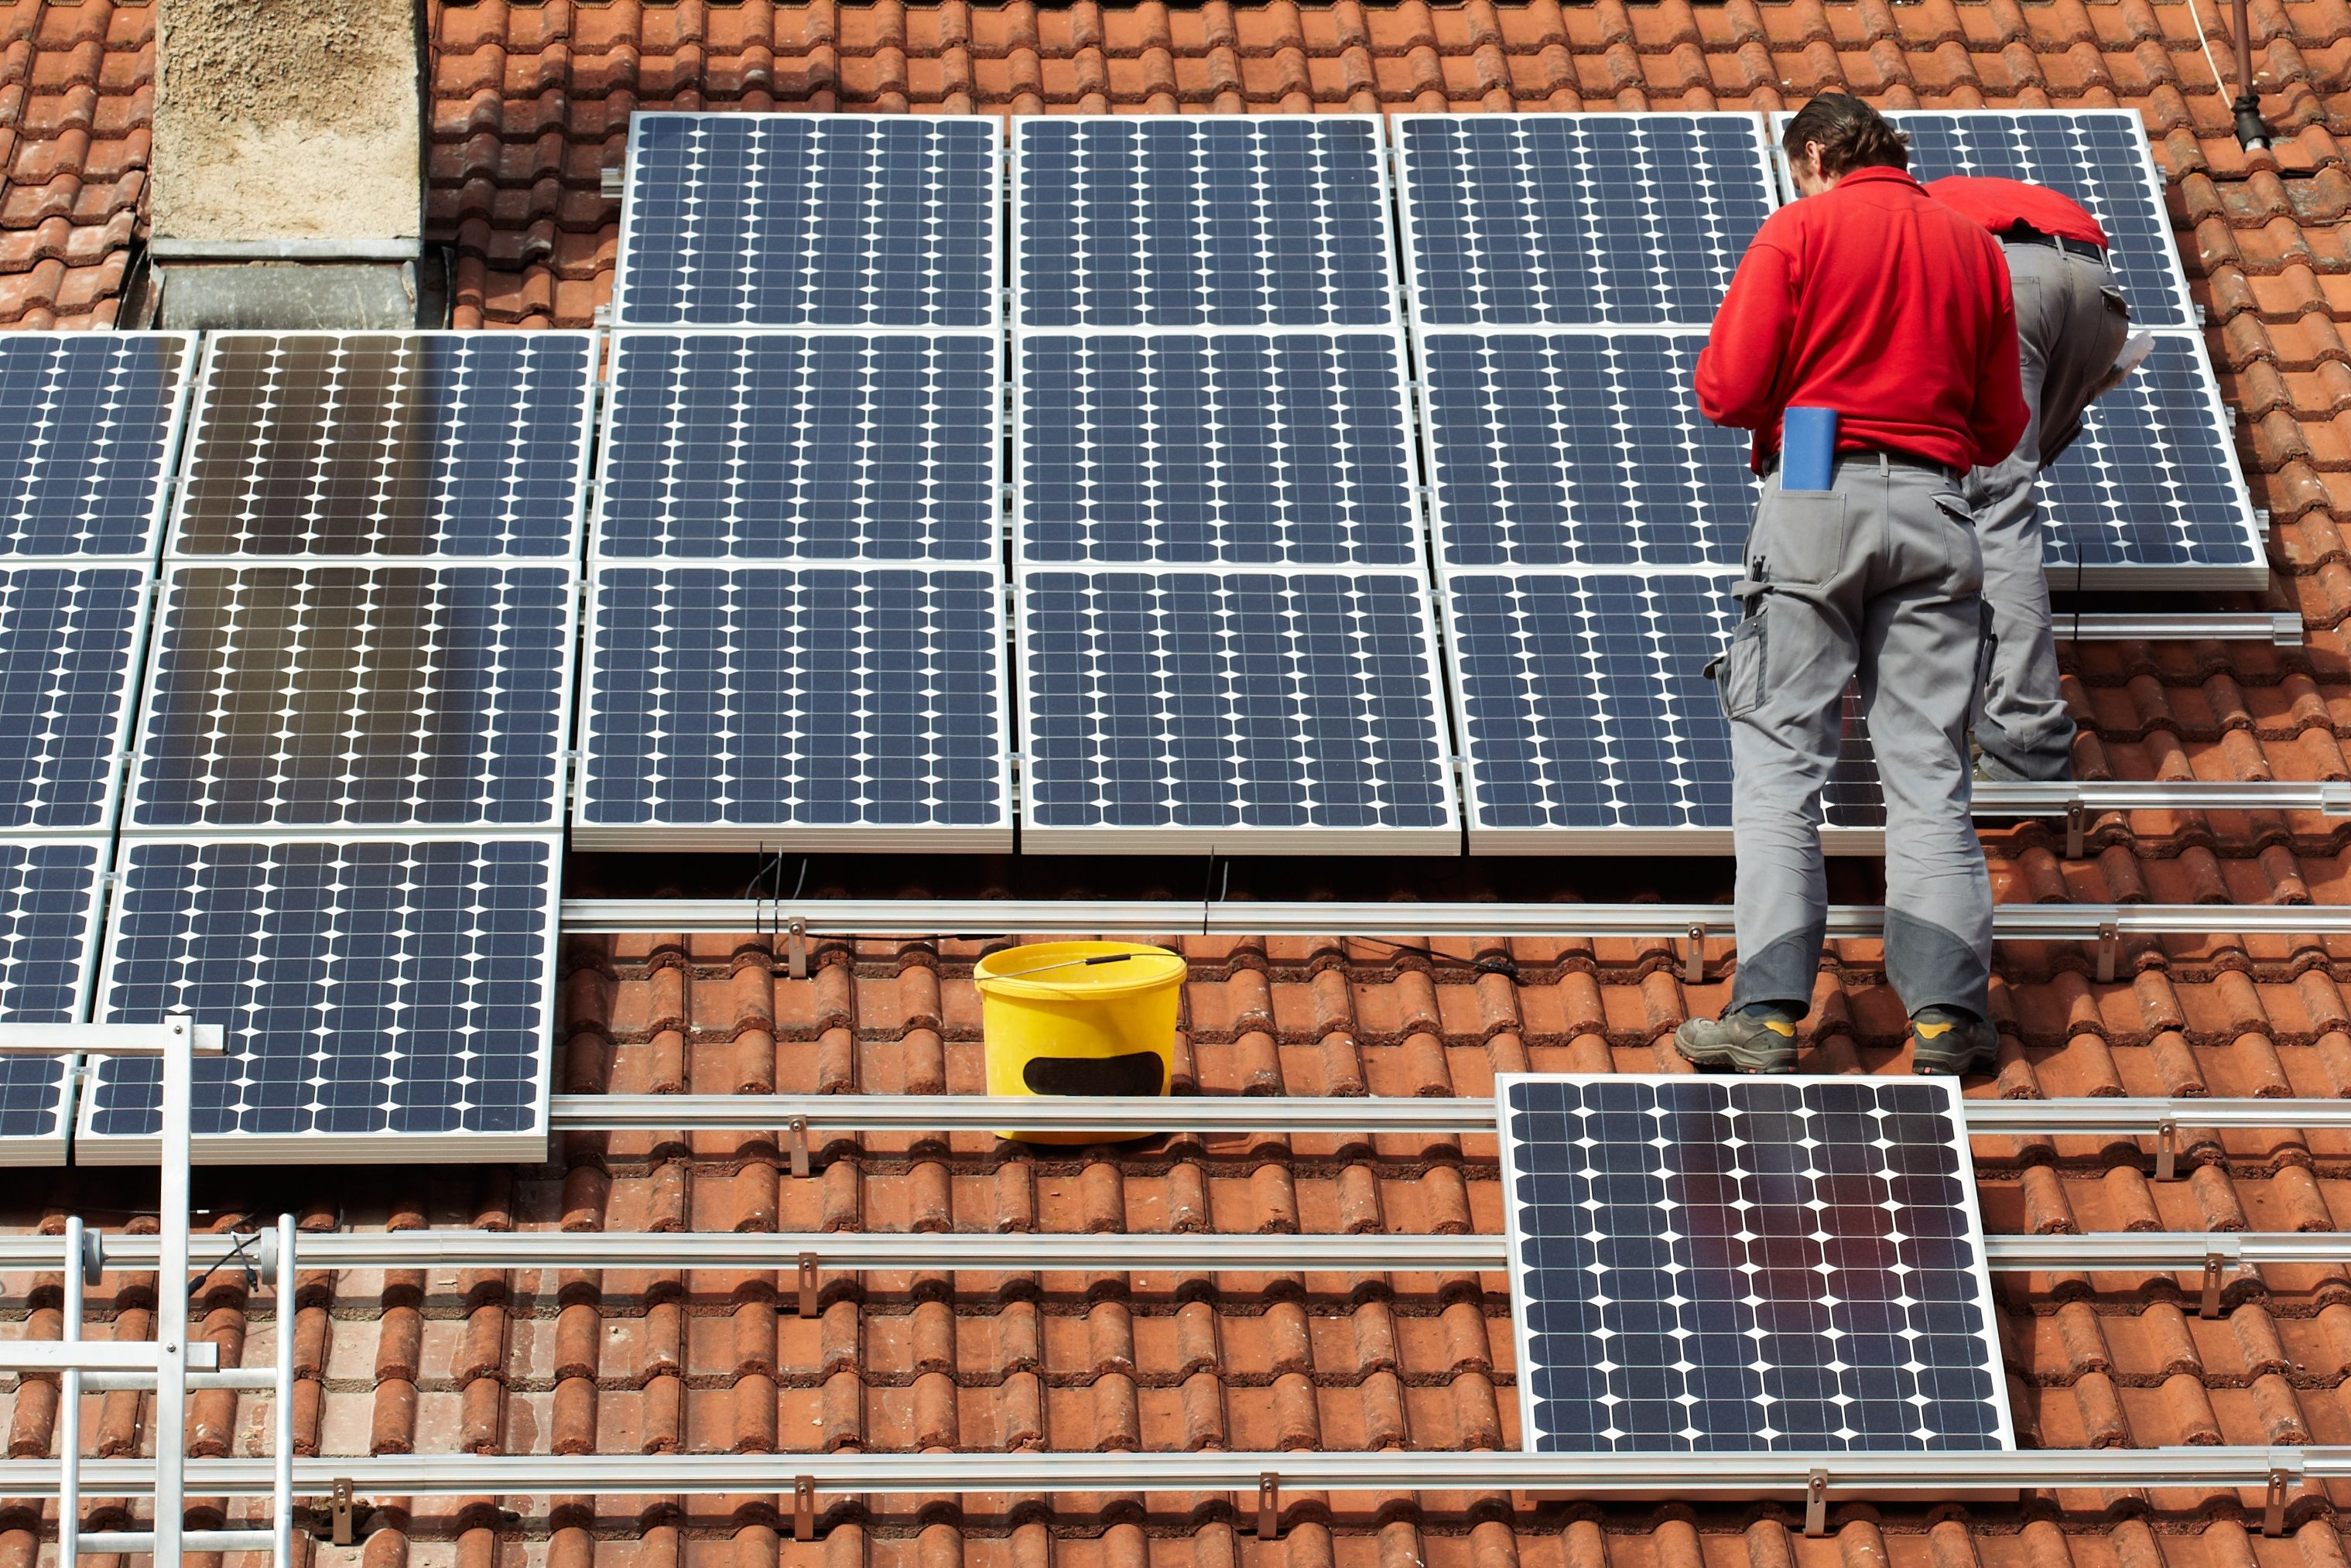 If approved by federal regulators, NERA's petition would cast a deep shadow over the U.S. rooftop solar market.